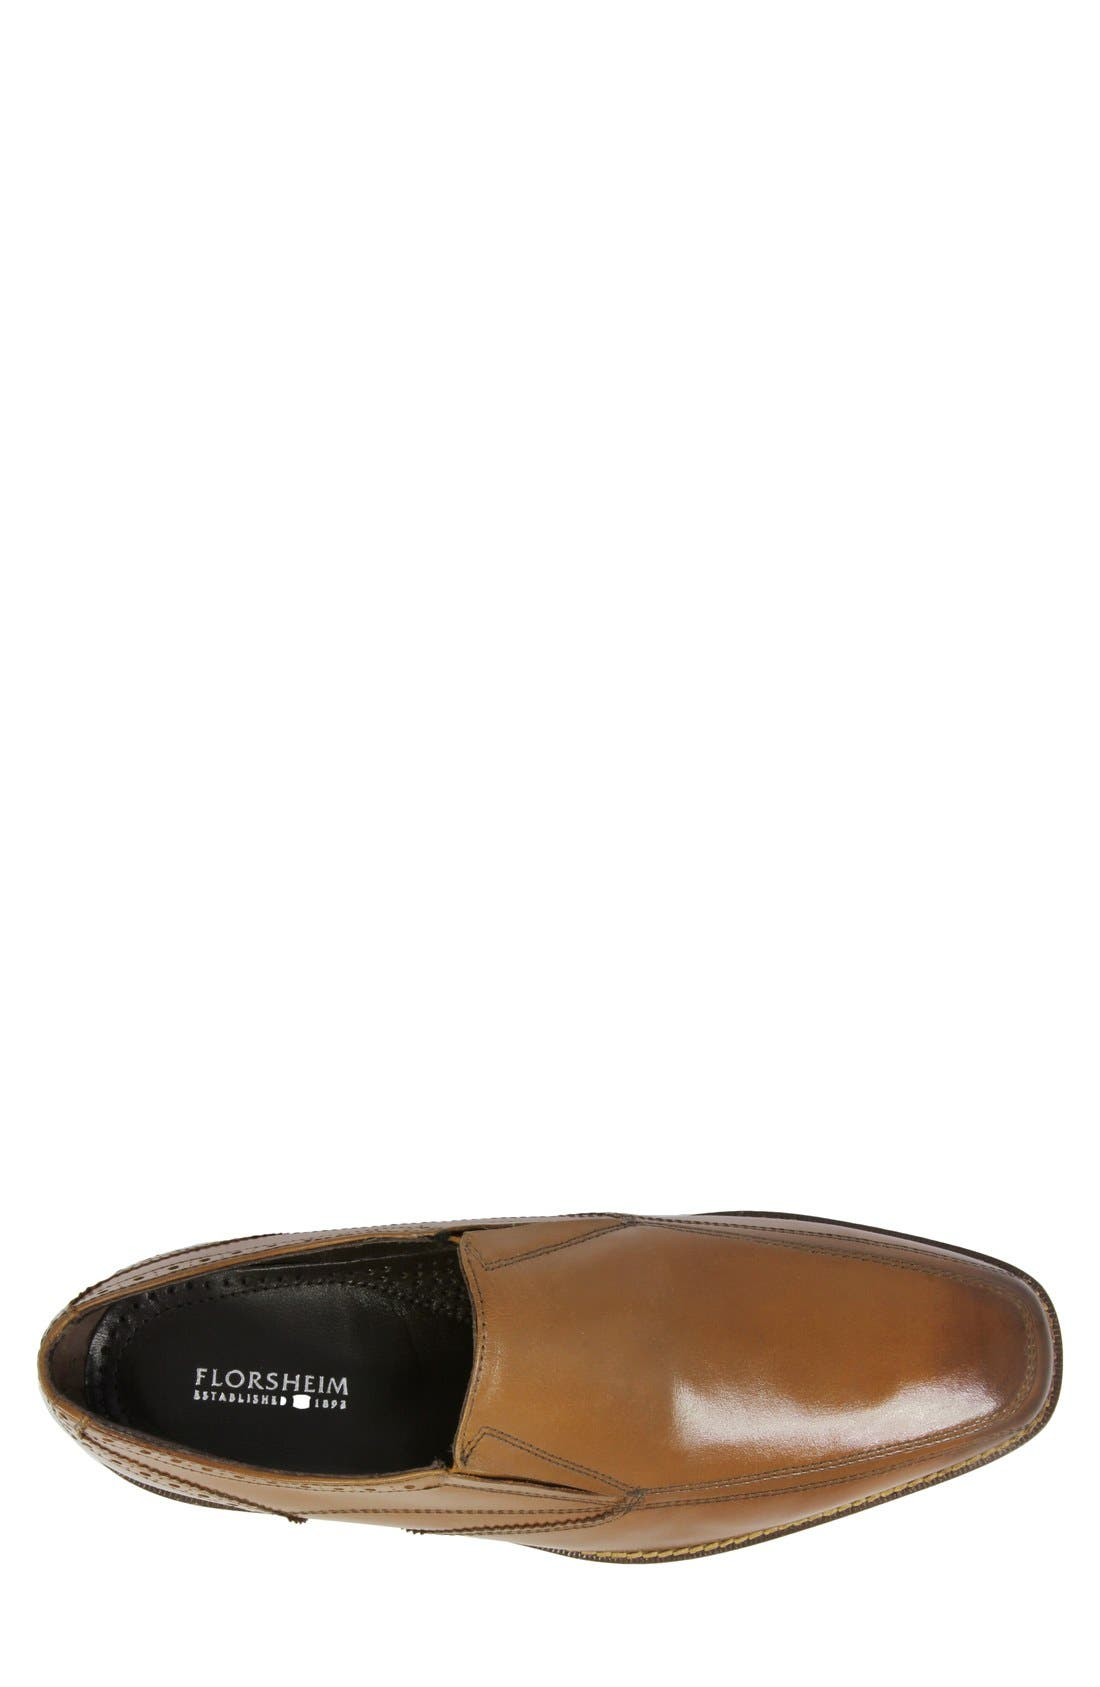 Alternate Image 3  - Florsheim 'Castellano' Venetian Loafer (Men)